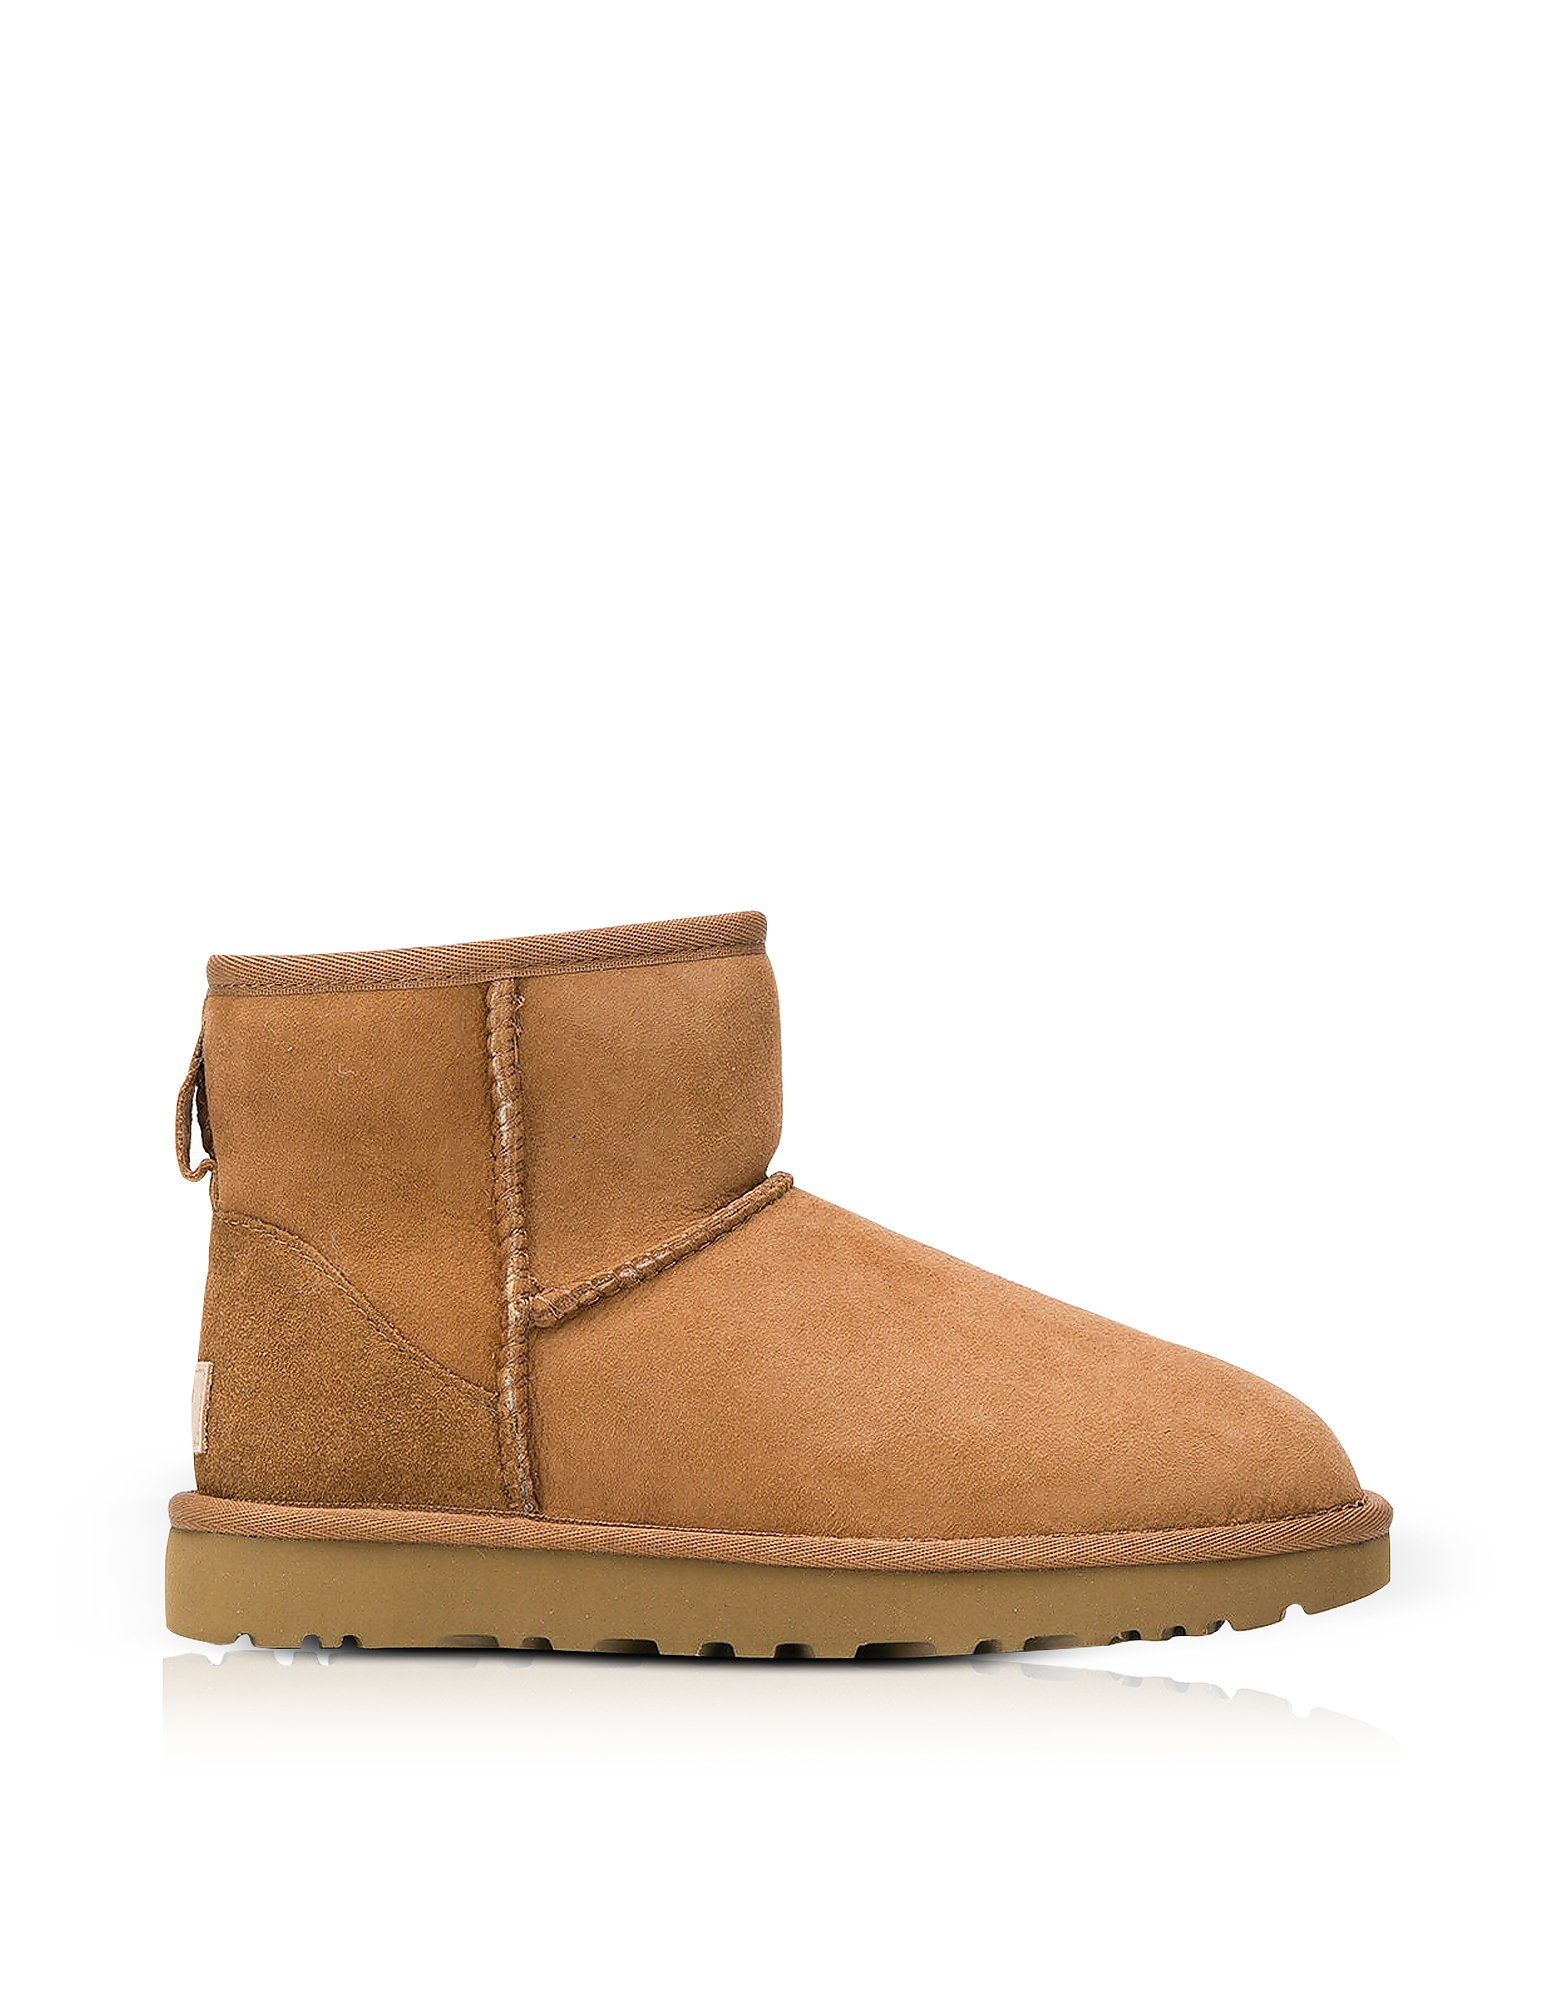 UGG Shoes, Chestnut Classic Mini II Boots